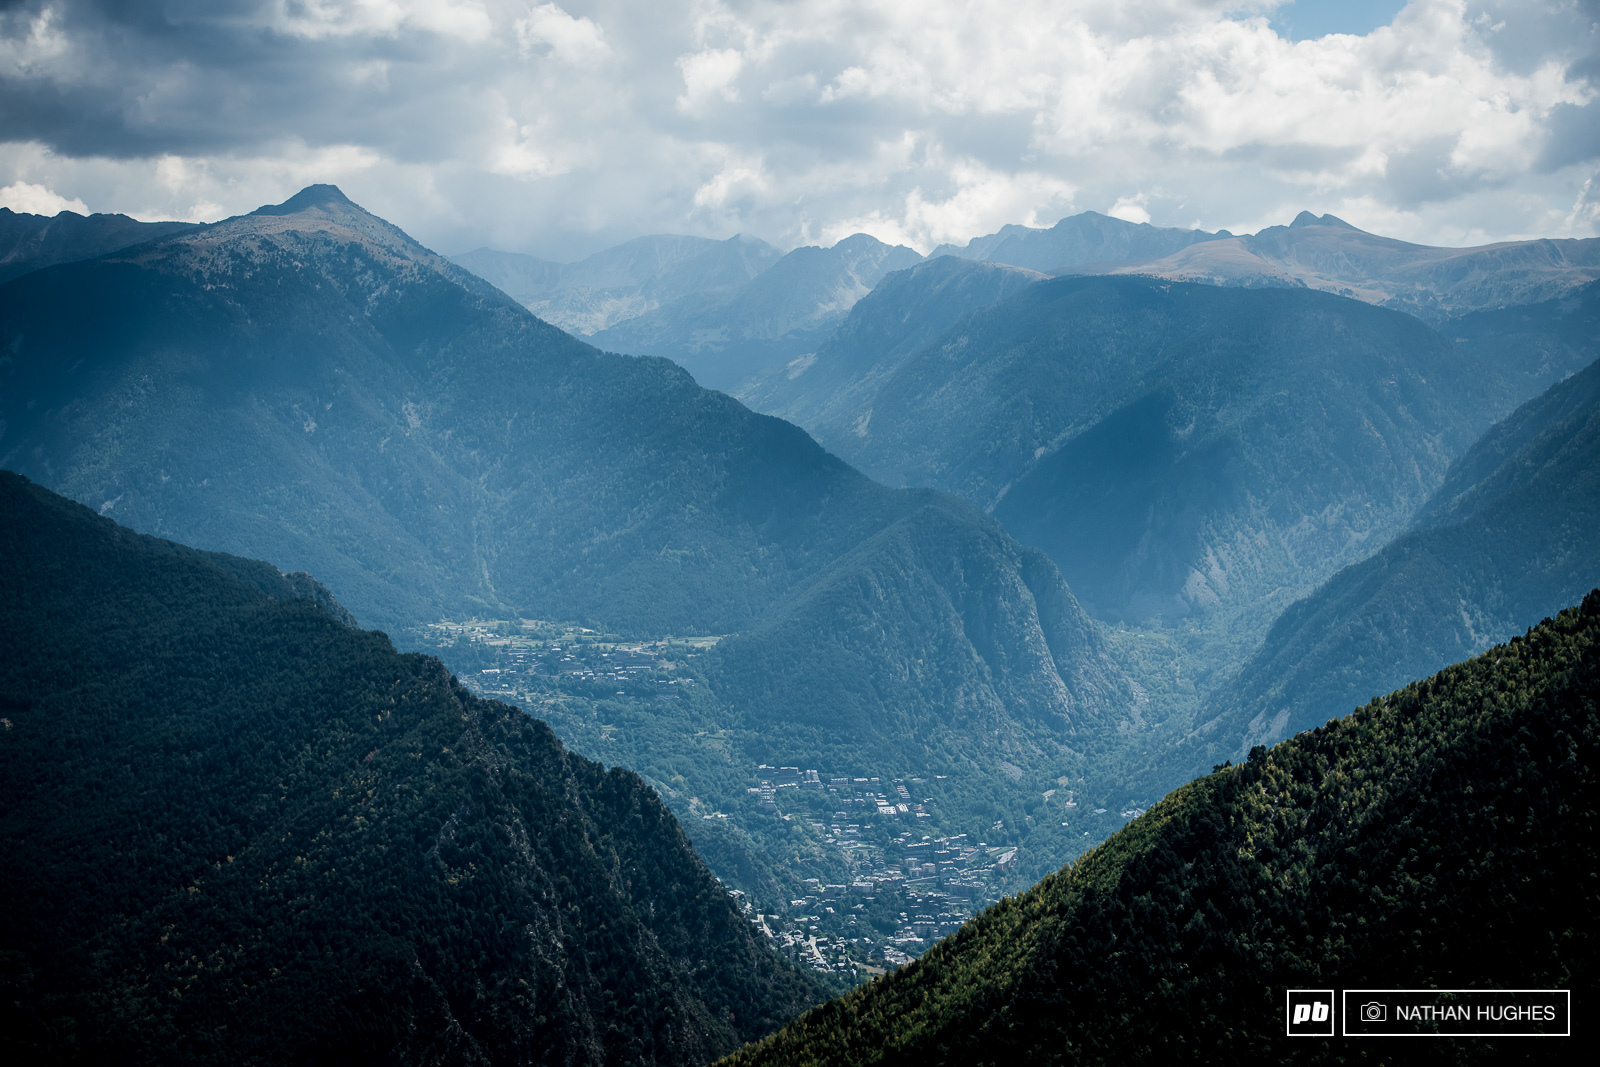 Andorra views for days. Months even.